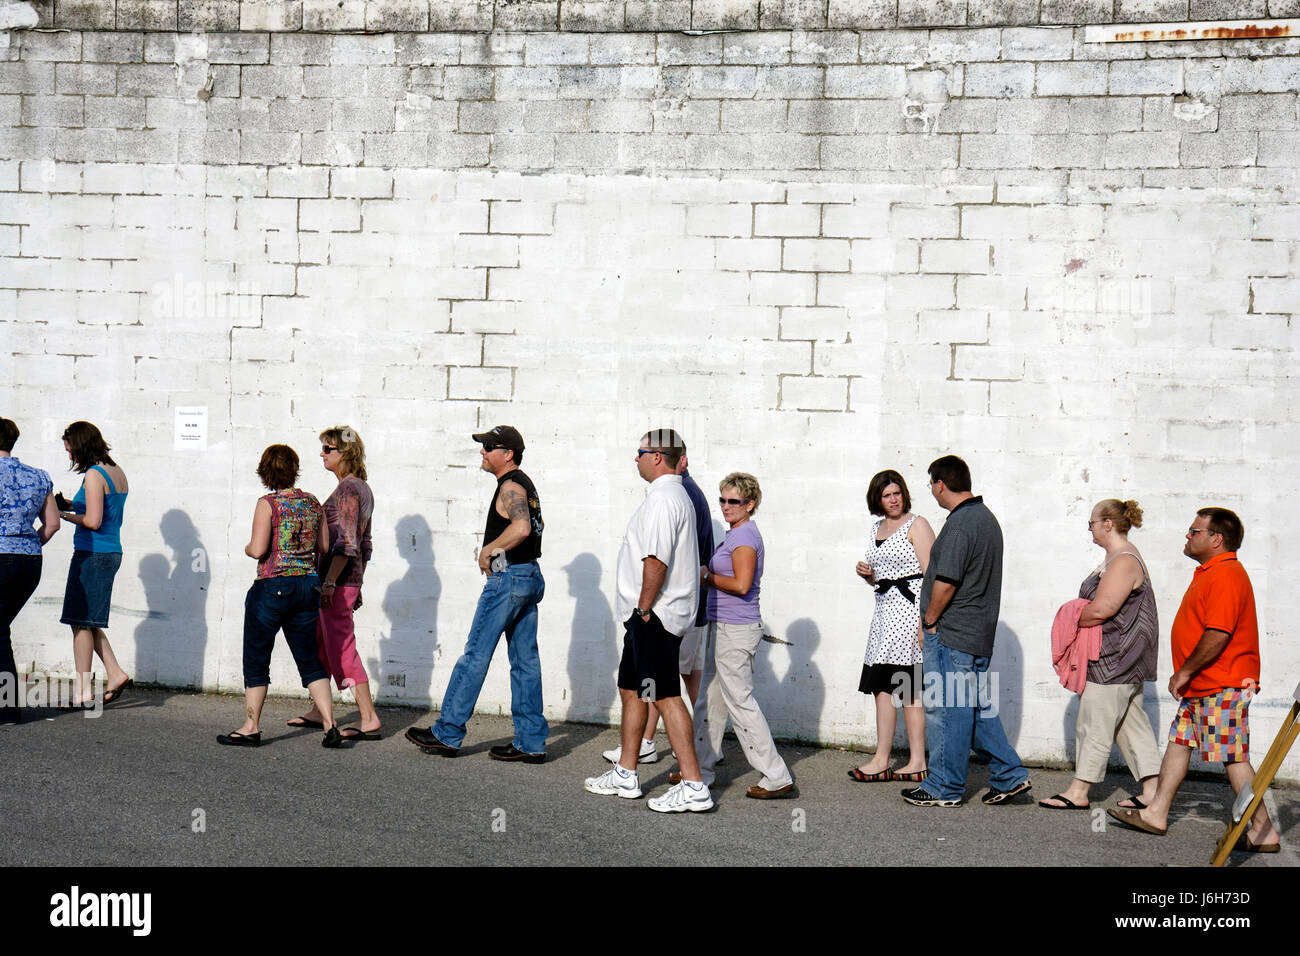 Virginia Roanoke Railside Stage First Fridays downtown street festival man men woman women wait in line queue attend - Stock Image